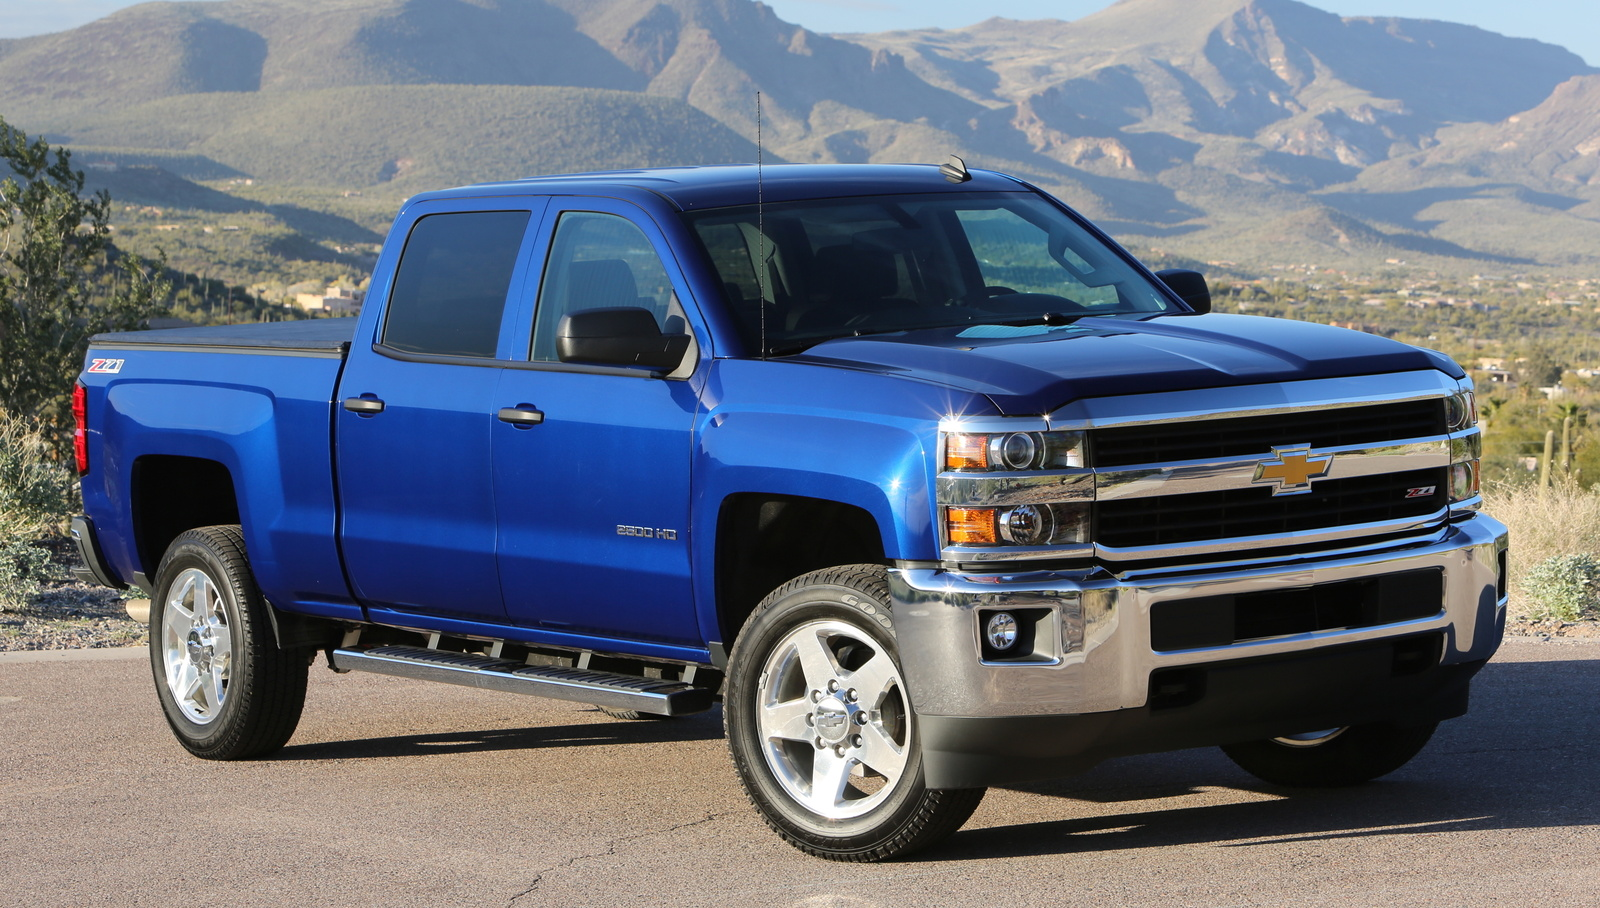 Most Expensive Truck In The World - Chevrolet Silverado 2500 4WD High Country